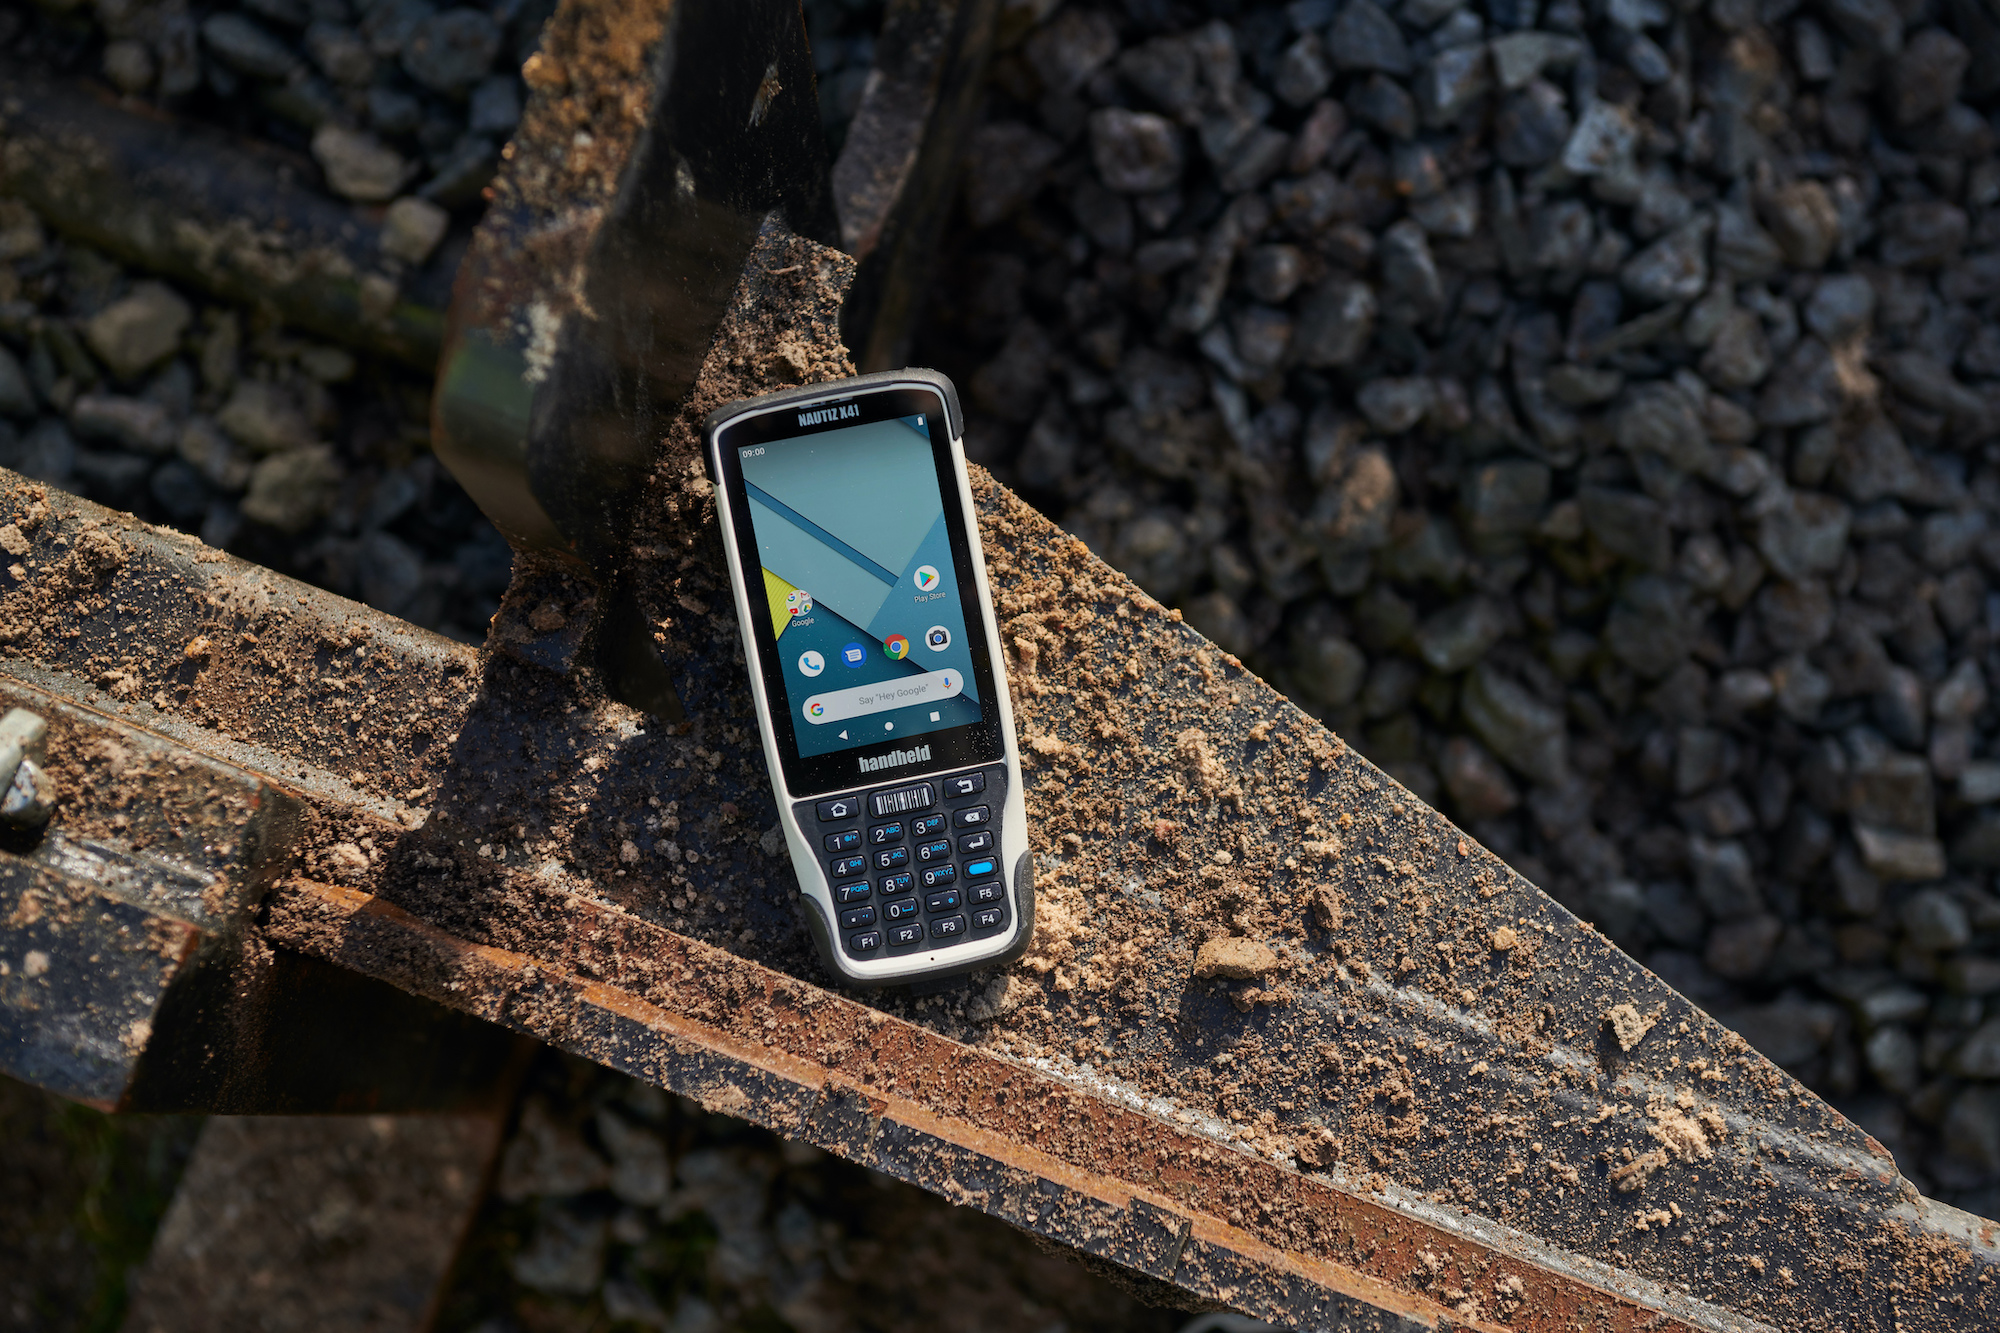 The Nautiz X41 rugged handheld comes with a full keypad and integrated scanner